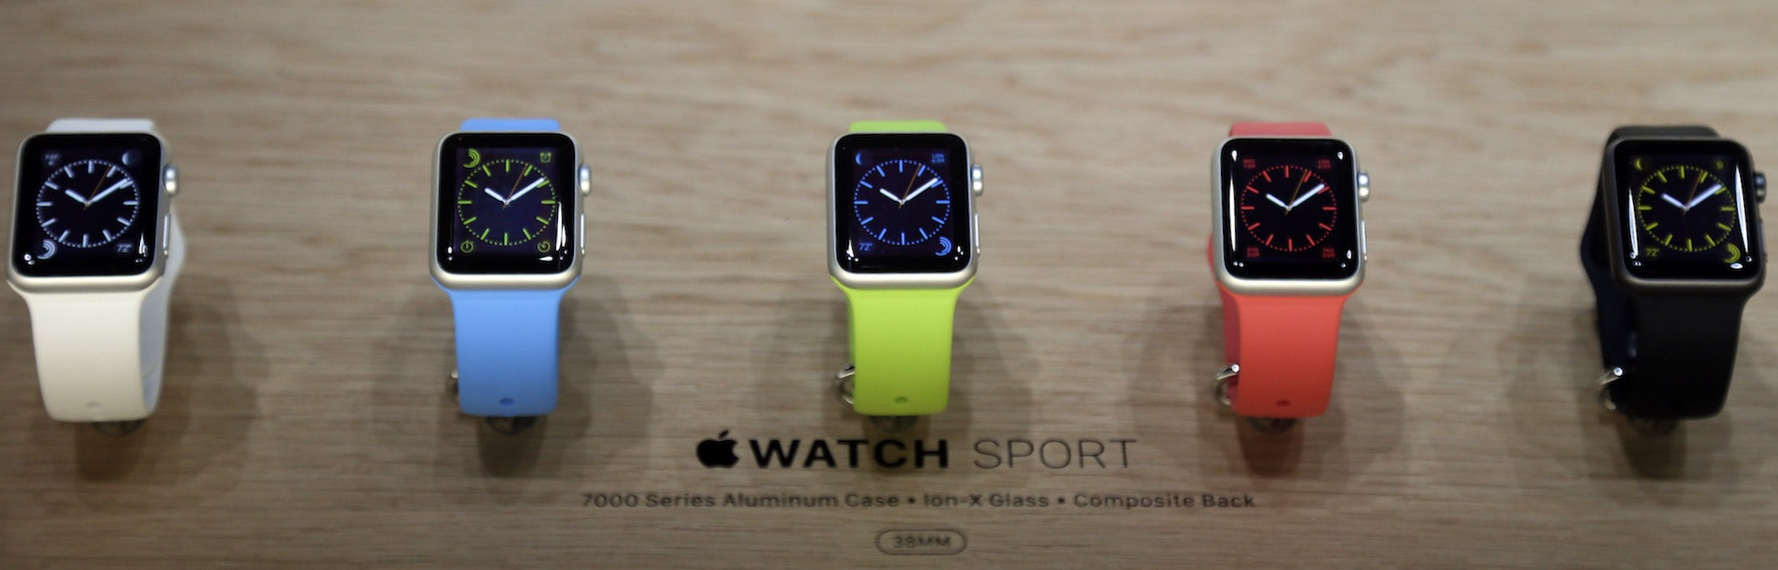 apple-watch2-ap